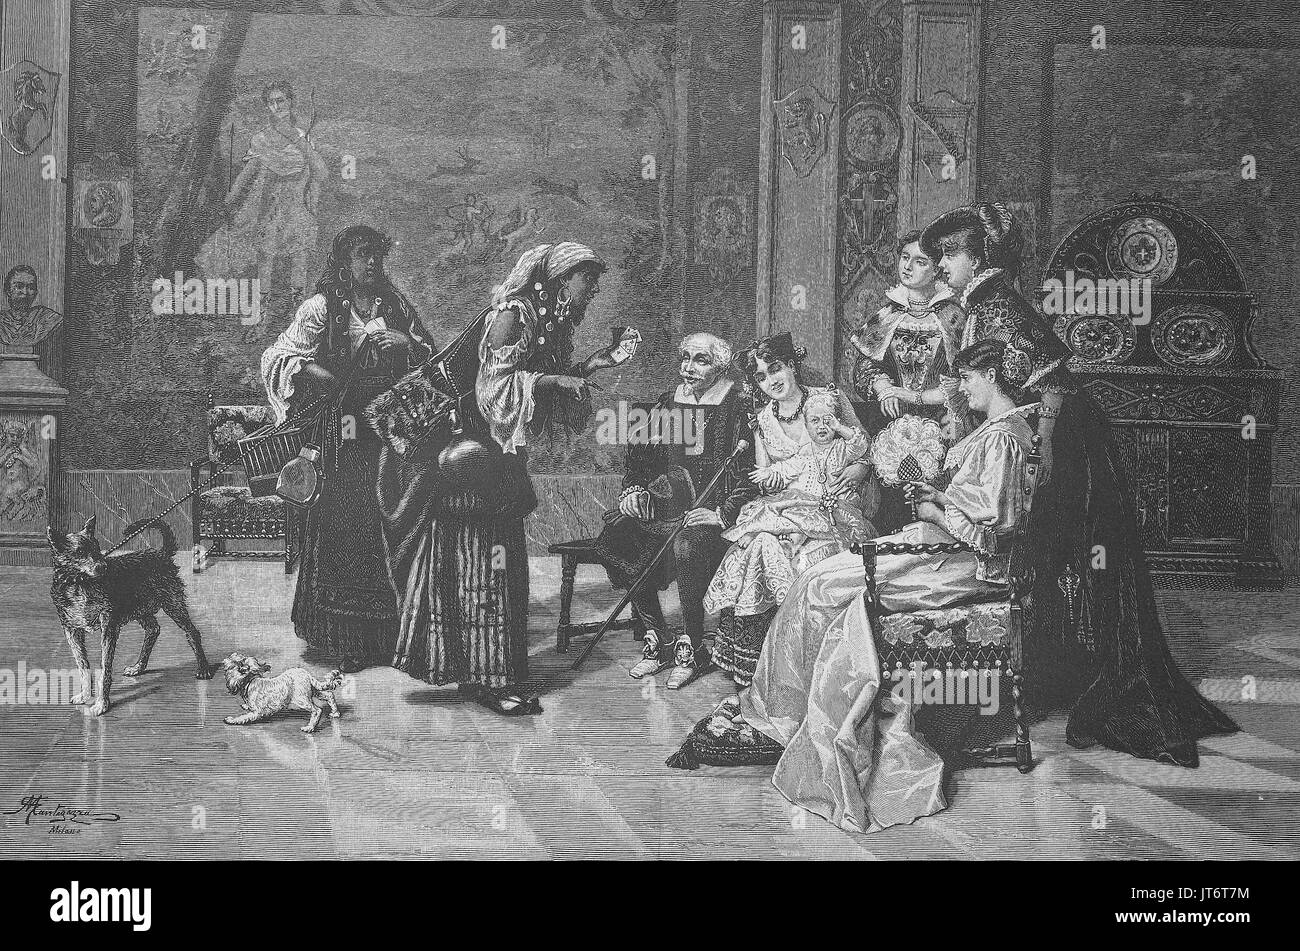 Soothsayer, Gypsy women visits a family, Prophecy by card game, Digital improved reproduction of an image published between 1880 - 1885 - Stock Image